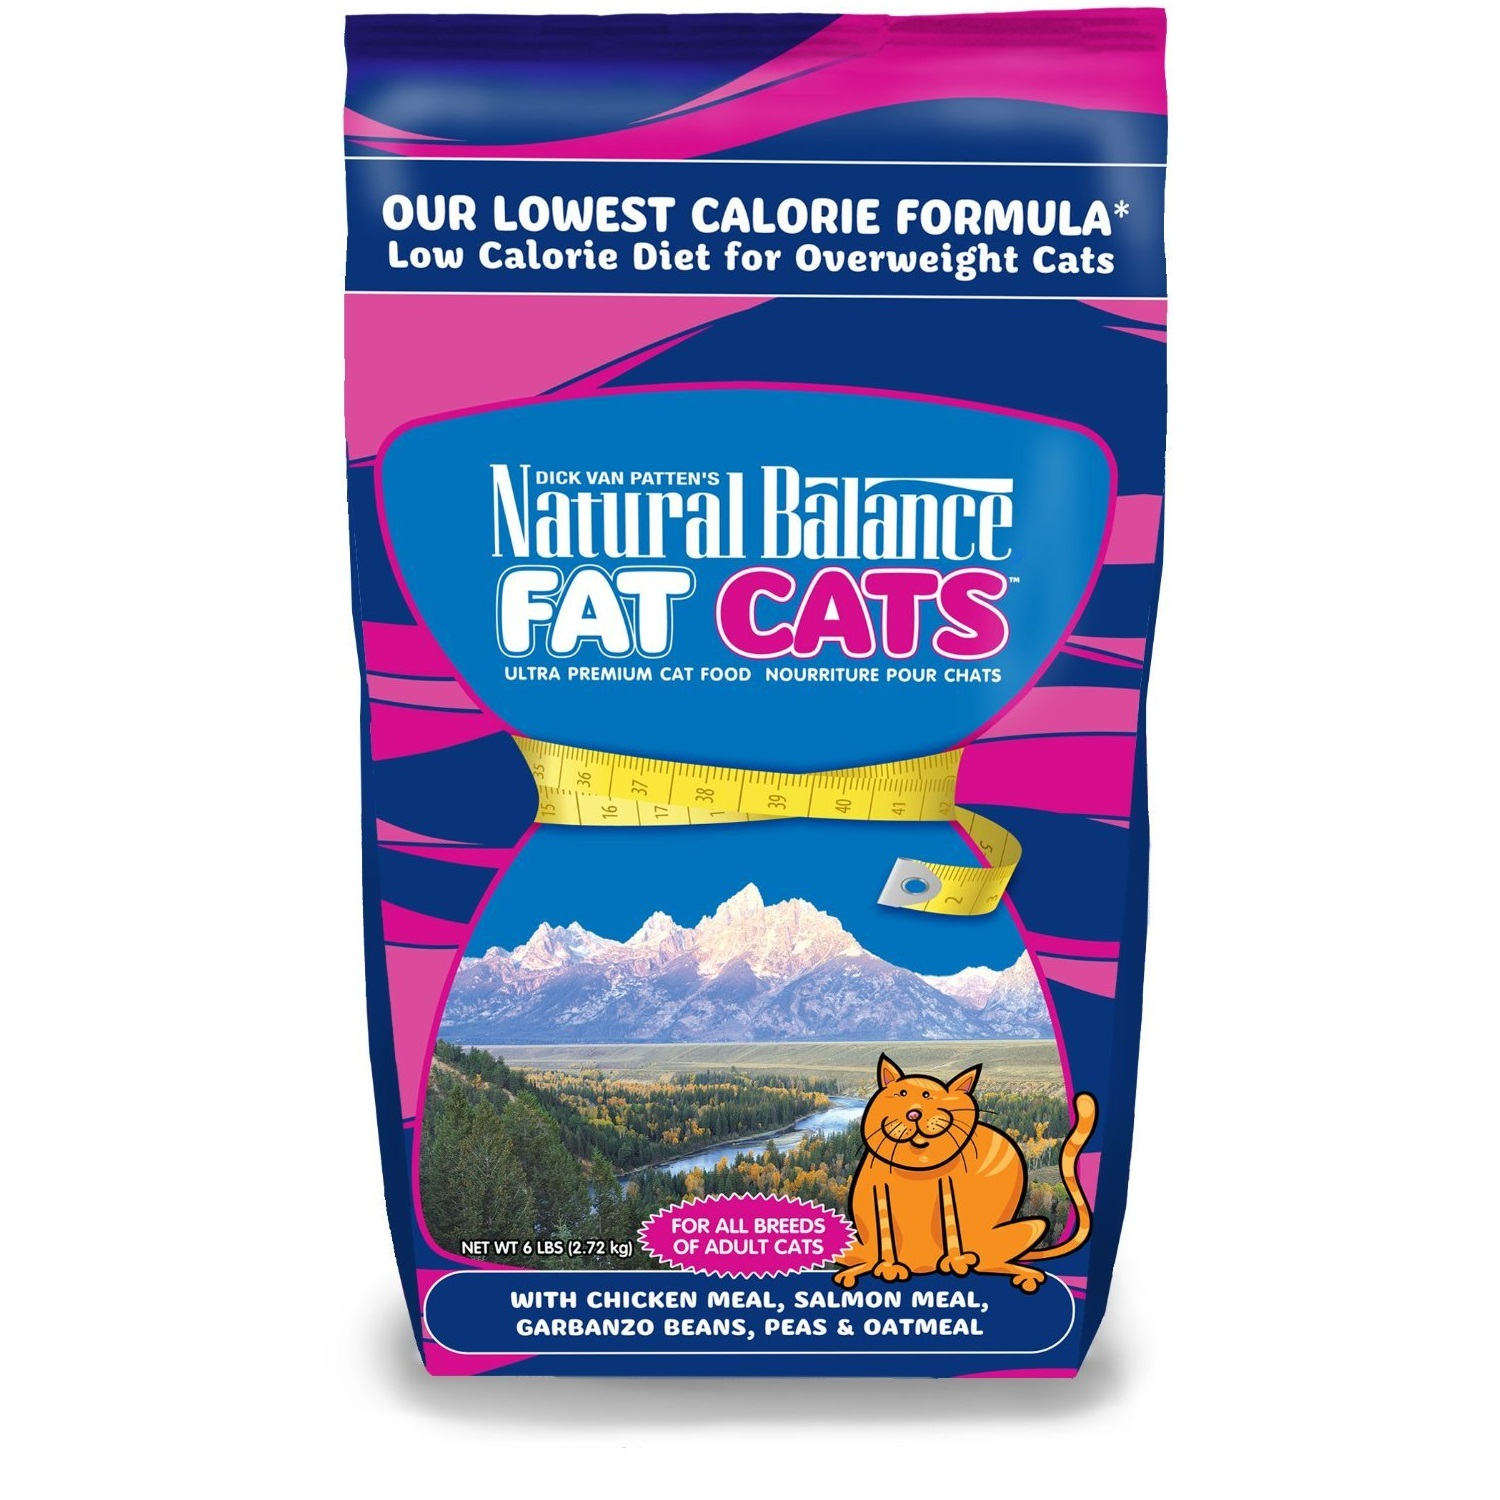 Natural Balance Fat Cats with Chicken Meal, Salmon Meal, Garbanzo Beans, Peas & Oatmeal Dry Cat Food 6lbs